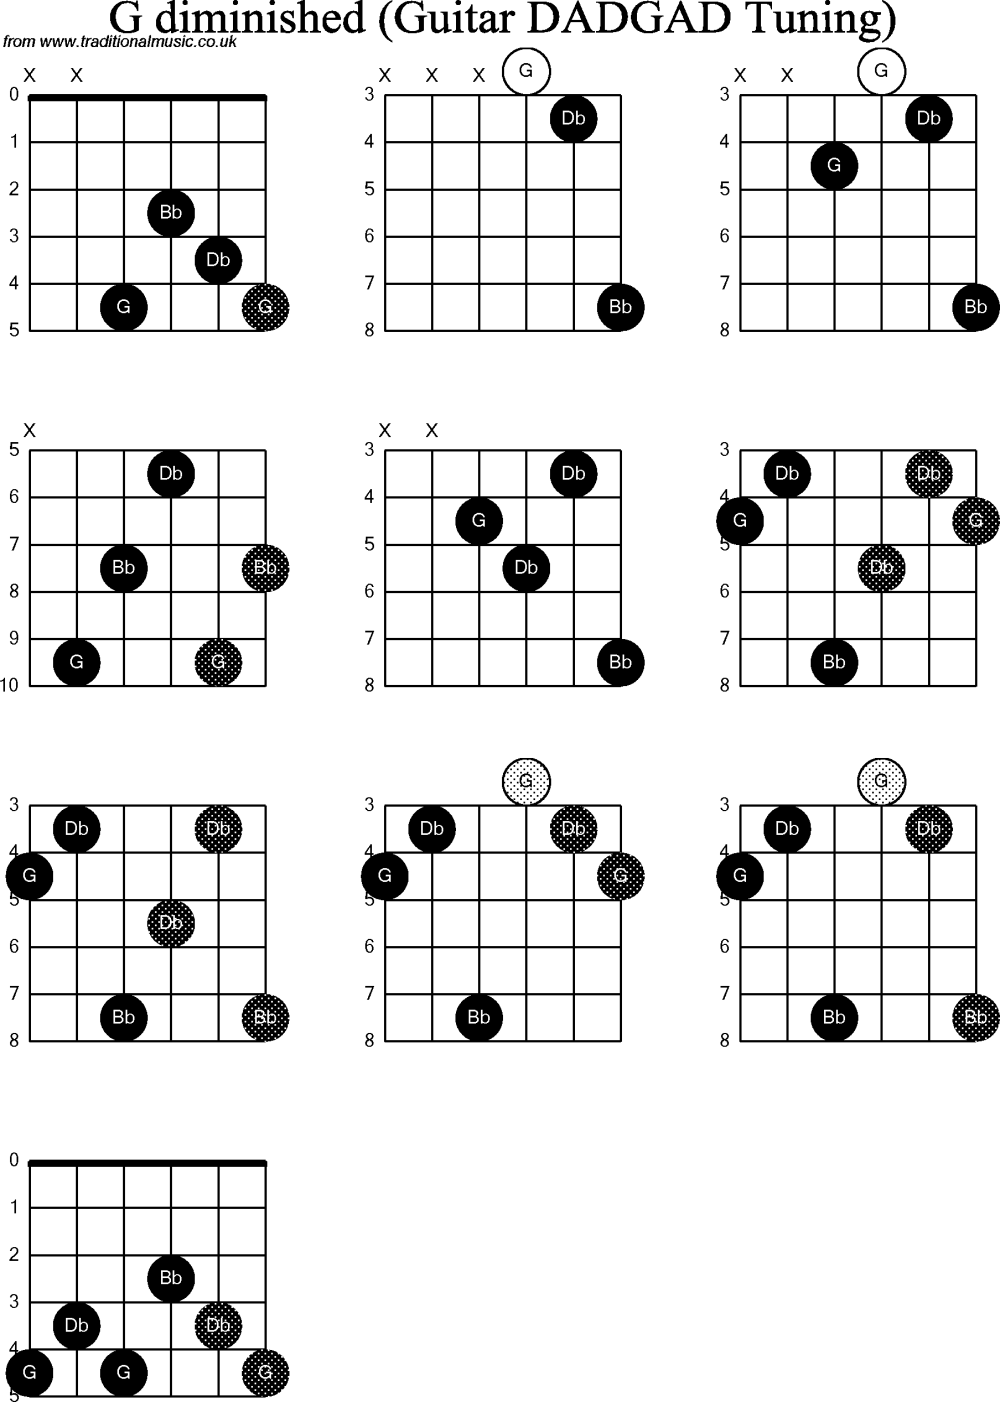 medium resolution of chord diagrams d modal guitar dadgad g diminished